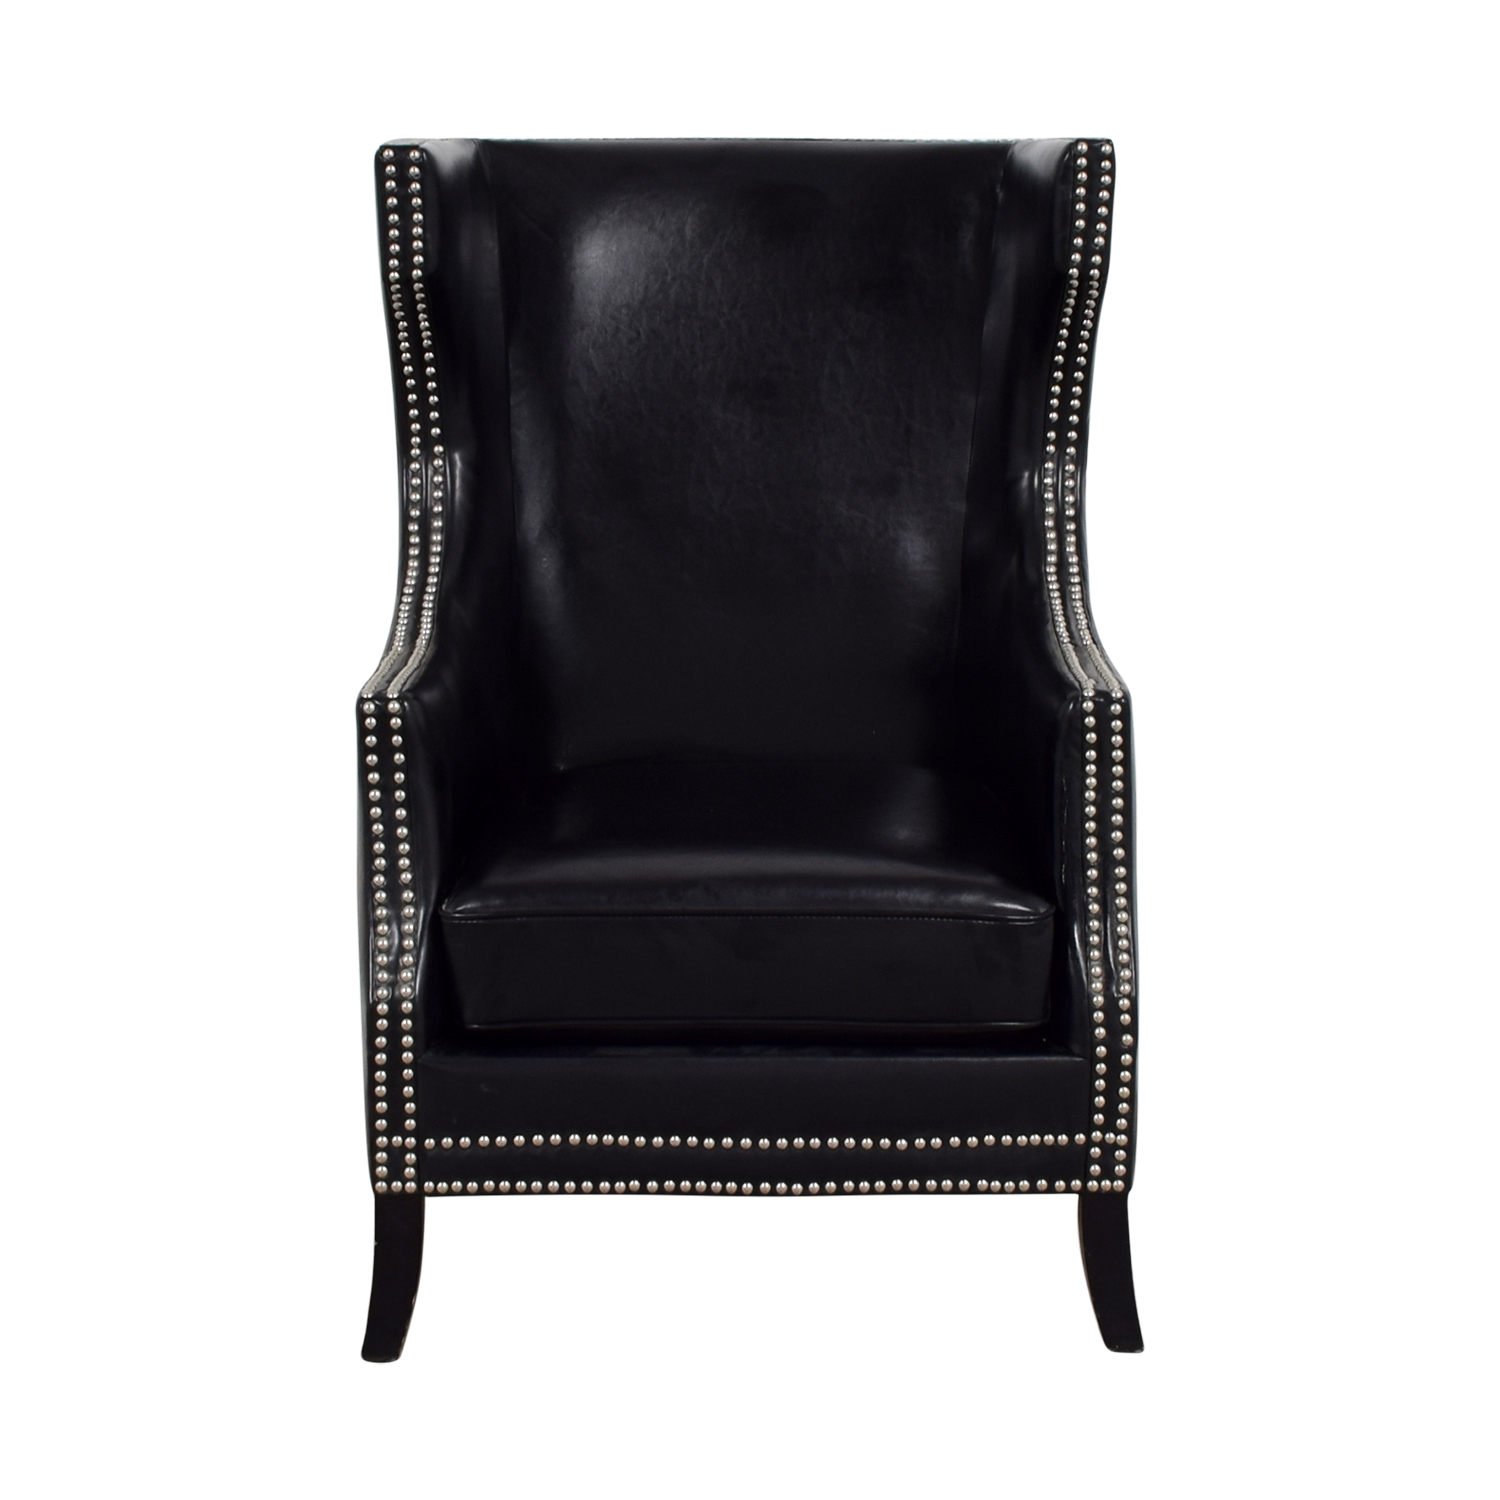 buy Brownstone Upholstery Brownstone Upholstery Thomas Black Nailhead Club Chair online